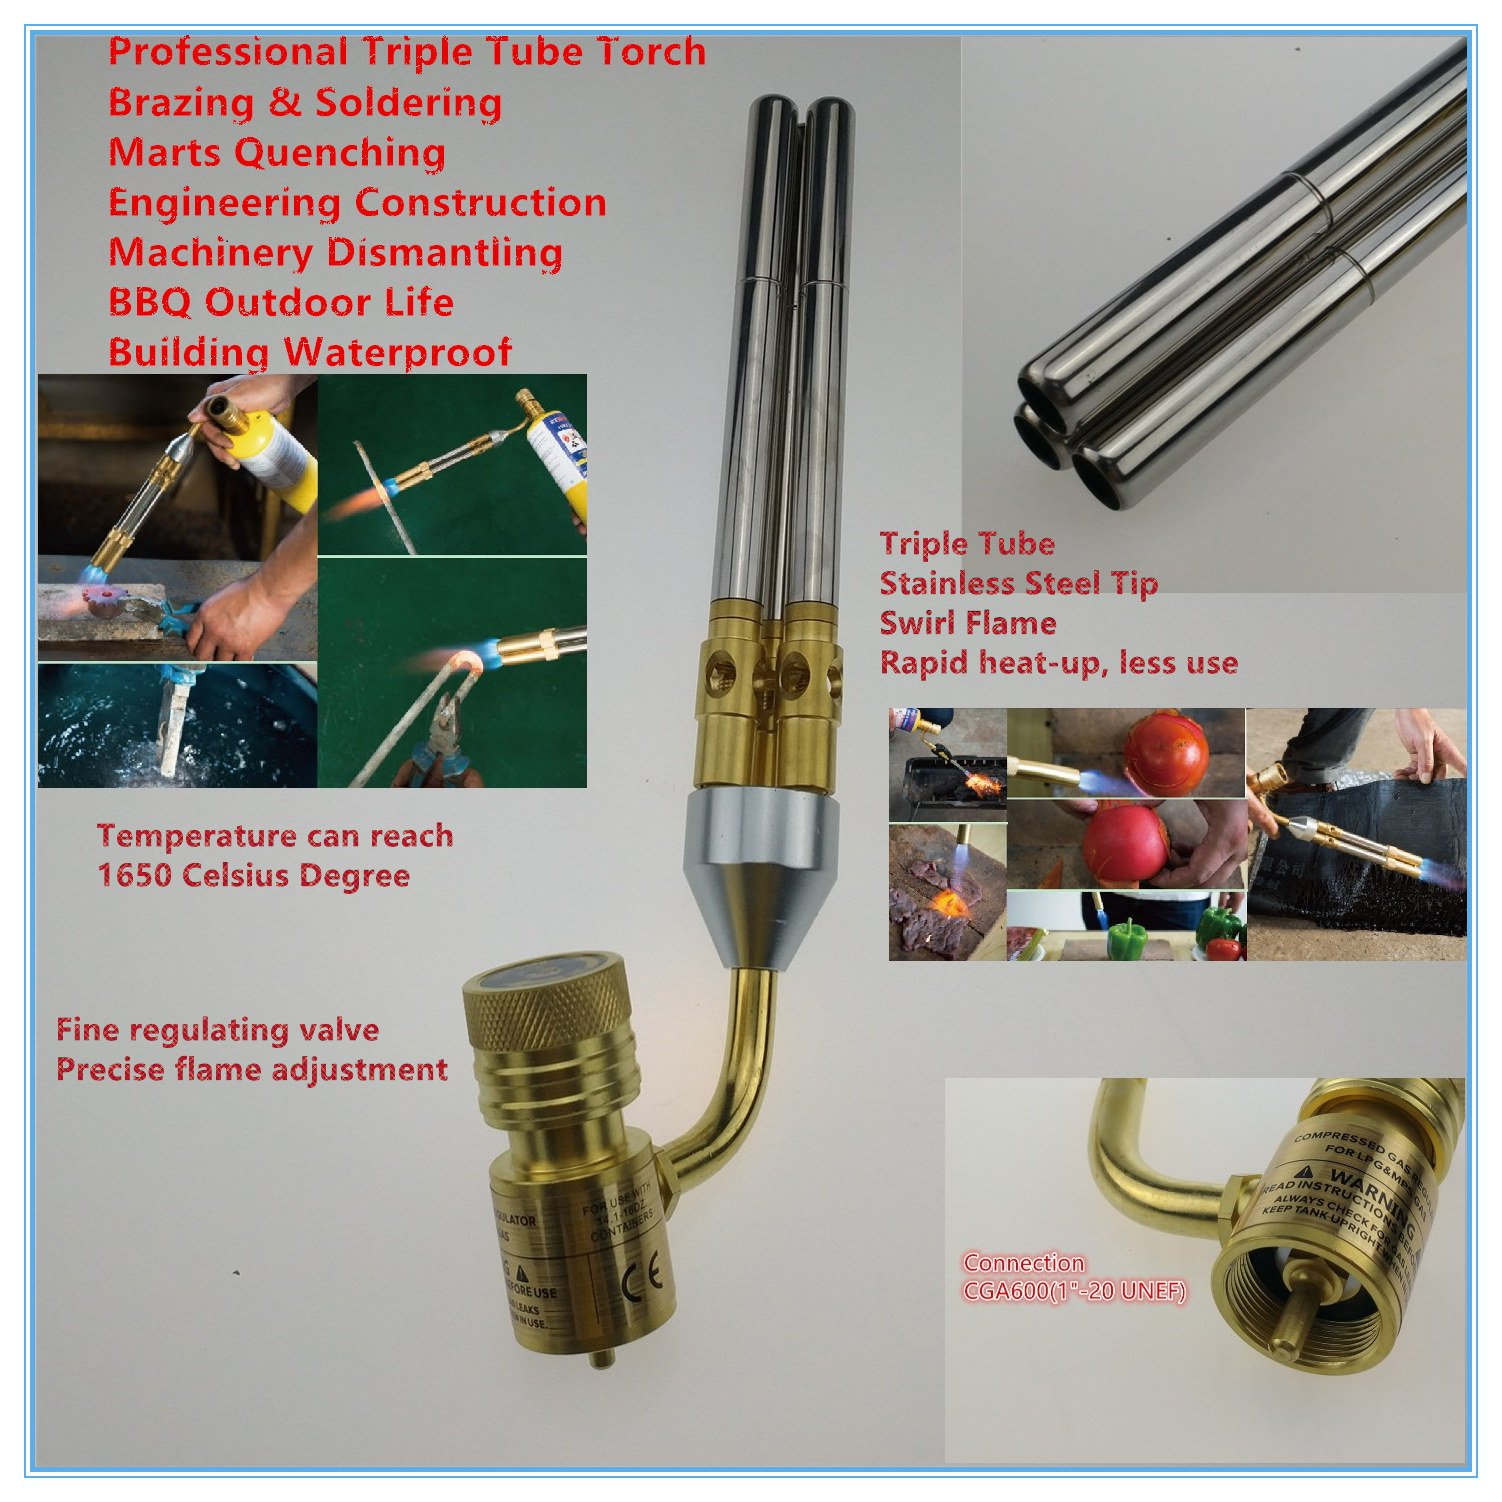 Mapp Gas Welding Torch Brazing Gun Supper 3 Pipes Propane Gas Welding Plumbing Jewelry CGA600 Connection Burner Heater Blowtorch